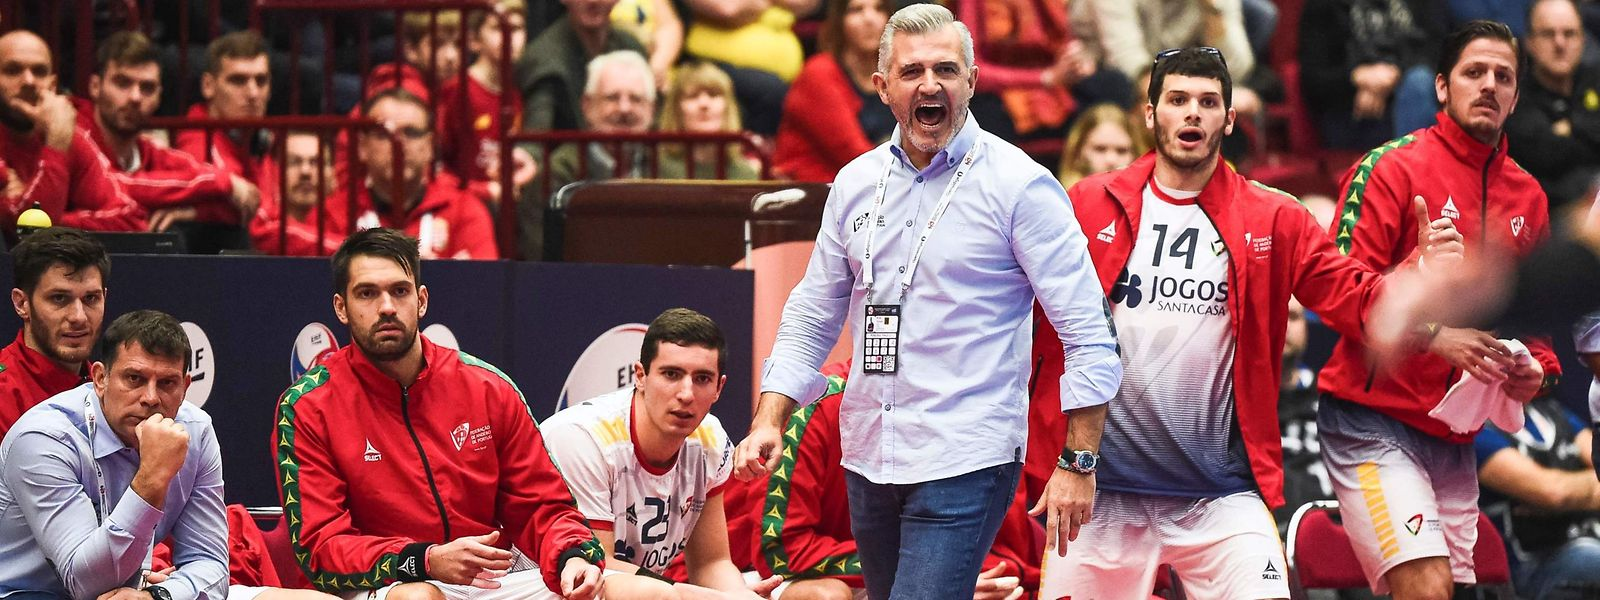 Portugal's head coach Paulo Pereira reacts during the Men's European Handball Championship, main round match between Portugal and Iceland in Malmoe, Sweden on January 19, 2020. (Photo by Jonathan NACKSTRAND / AFP)